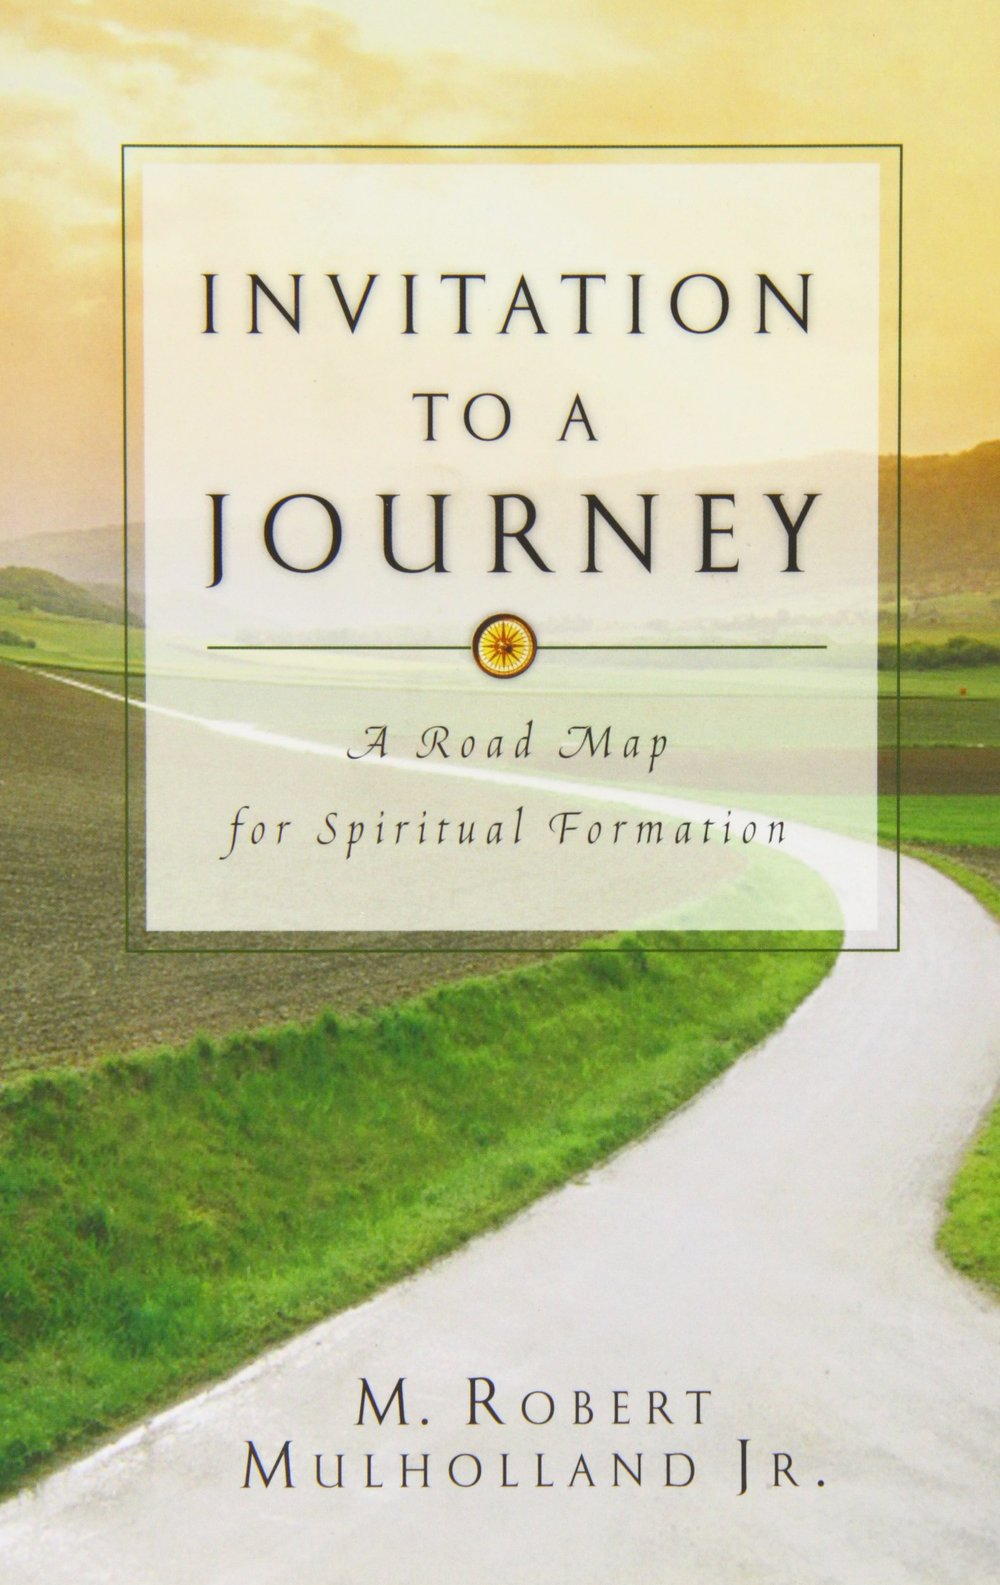 Invitation to A Journey by R. Muholland